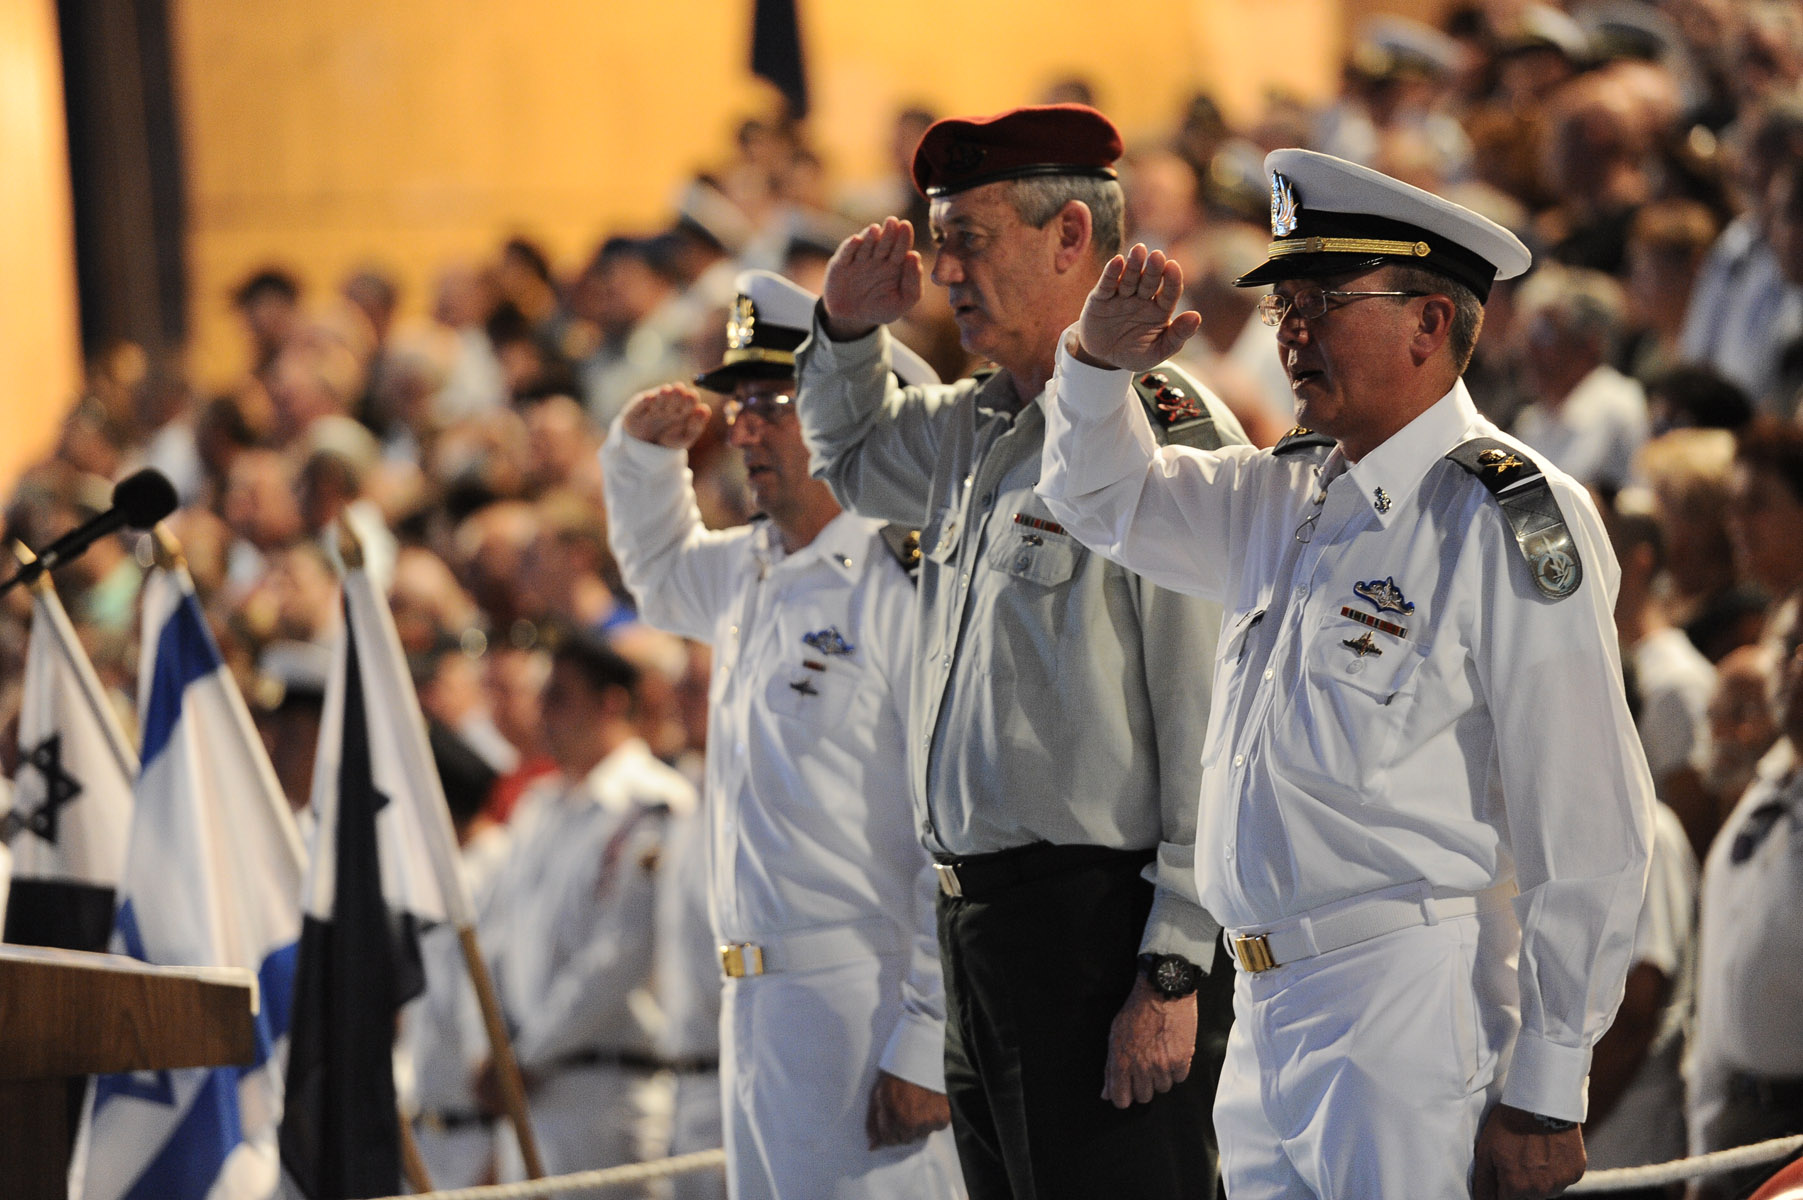 File:IDF Ceremony for the Newly Appointed Commander in Chief